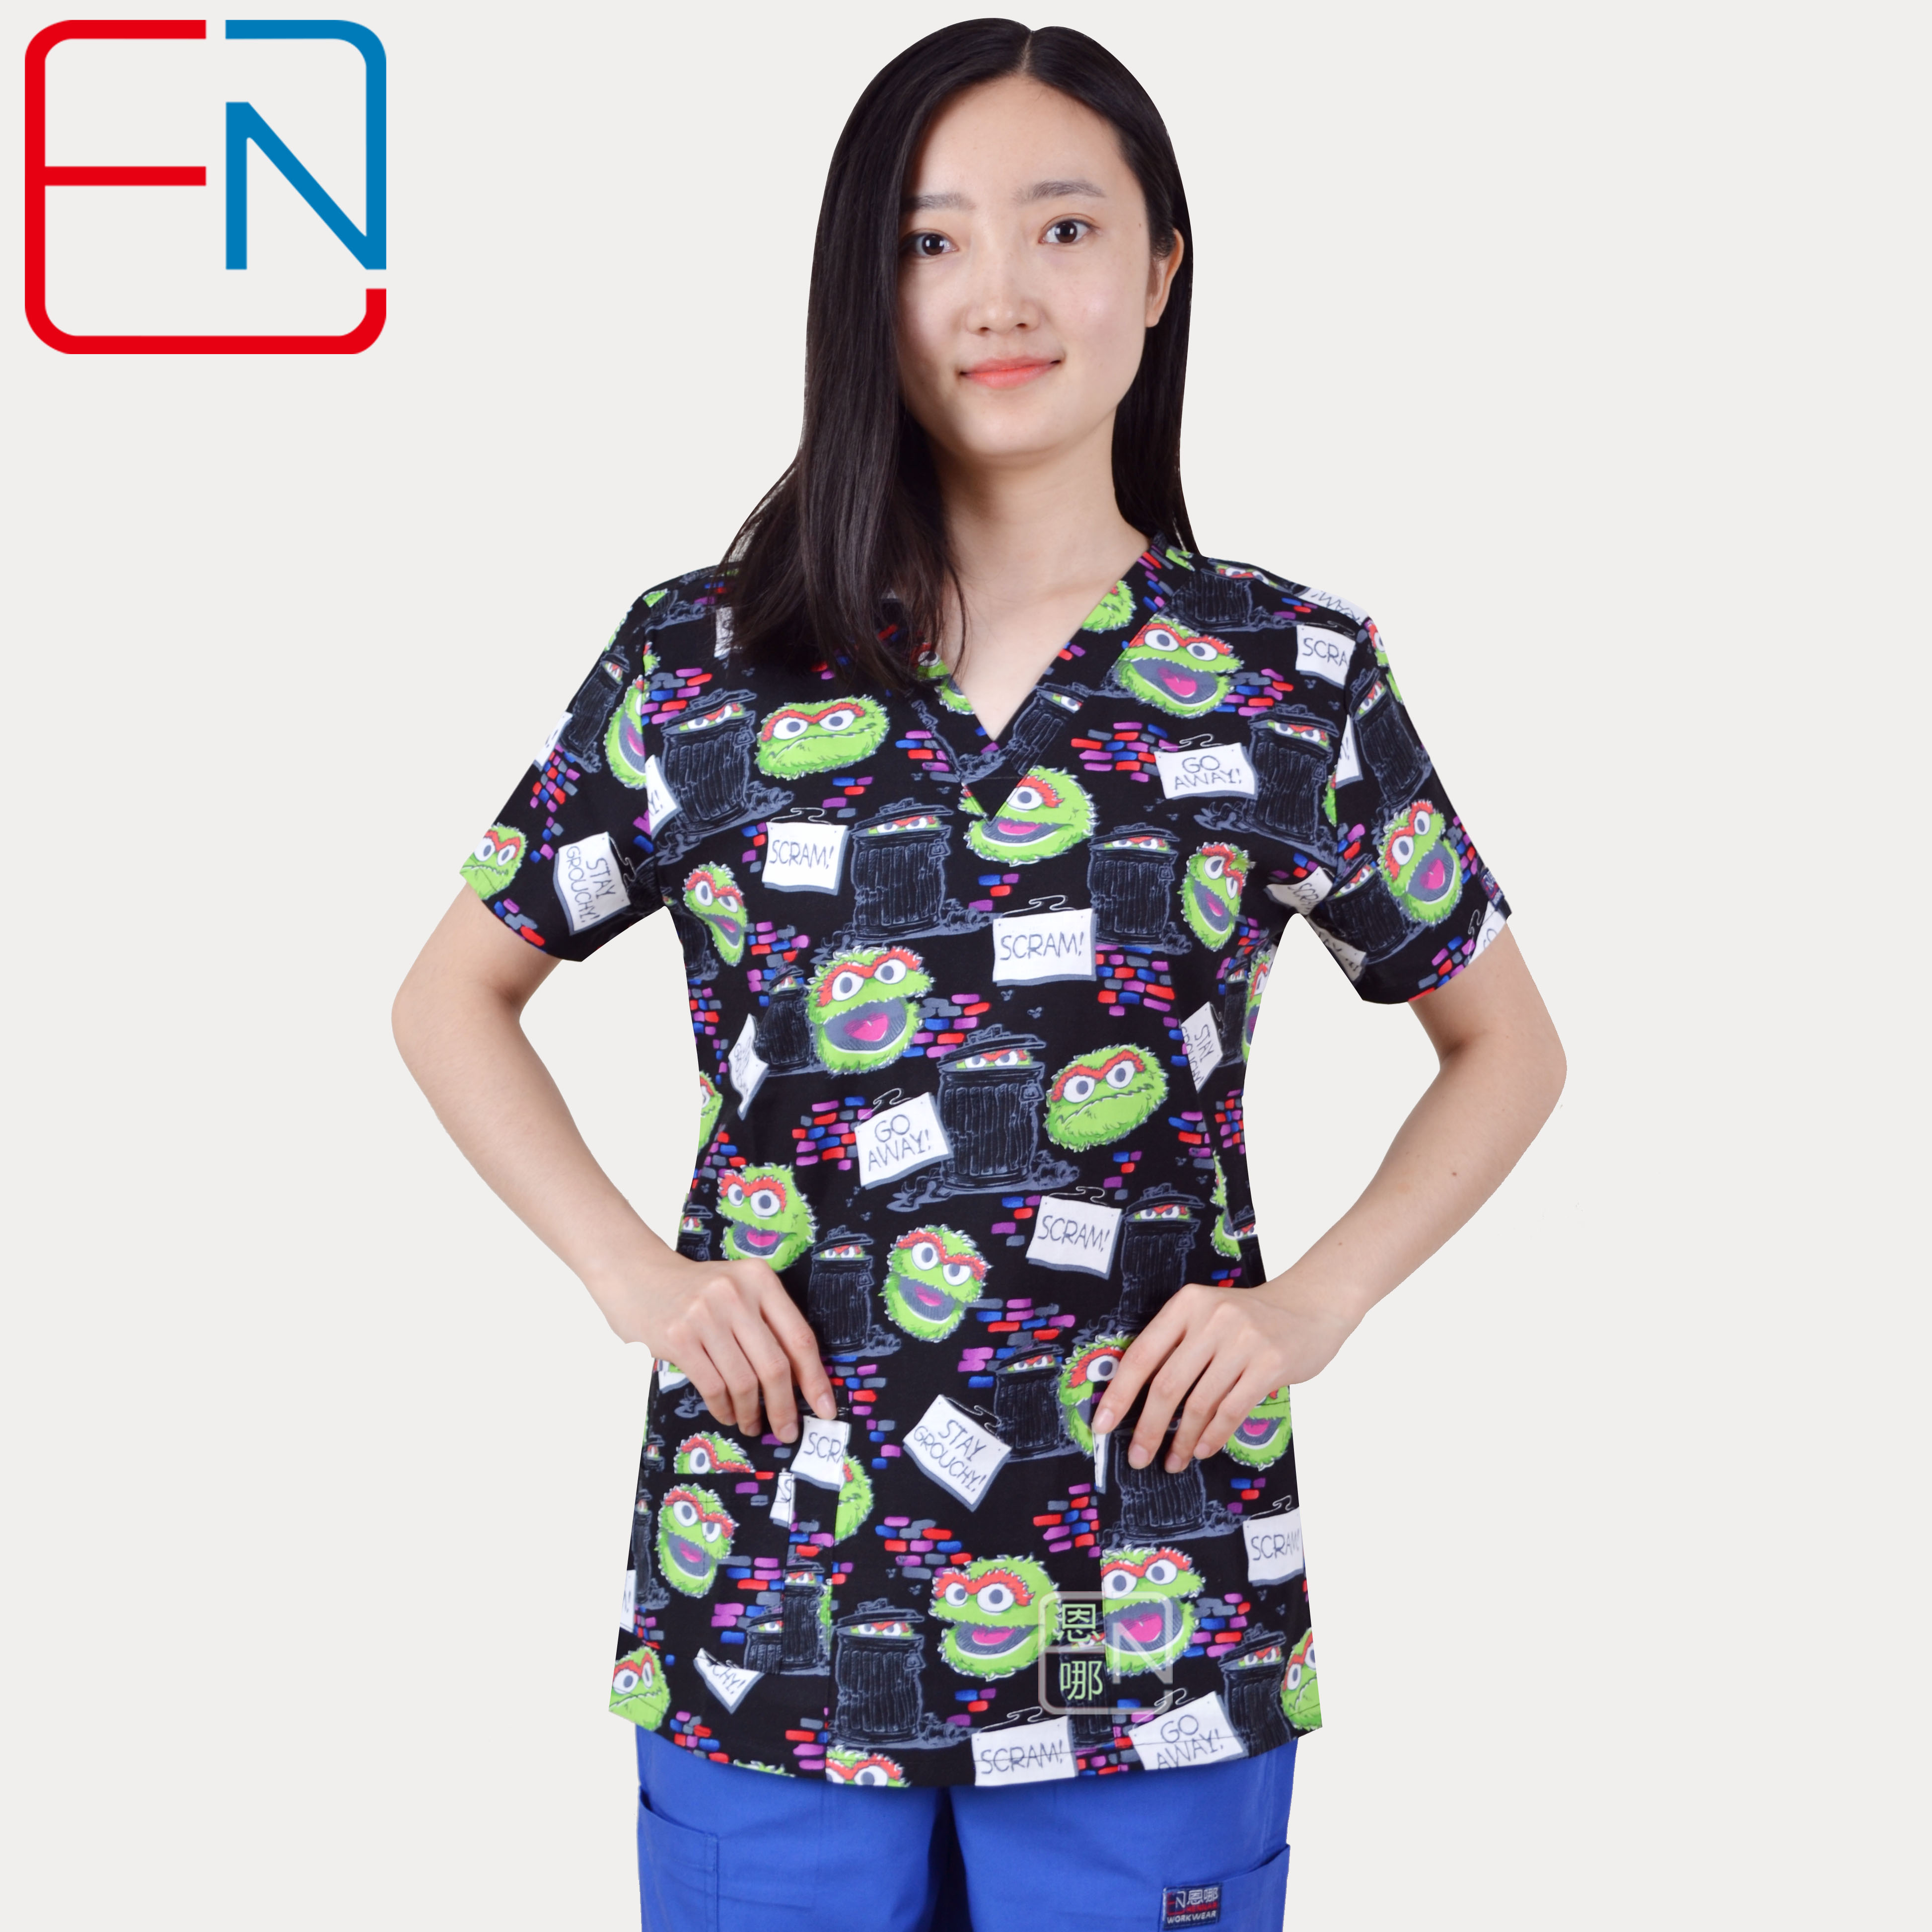 Hennar Medical Uniforms Women Scrub Top V-Neck Black Print 100% Cotton Hospital Clinical Surgical Scrubs Top For Women XXS-XXXL